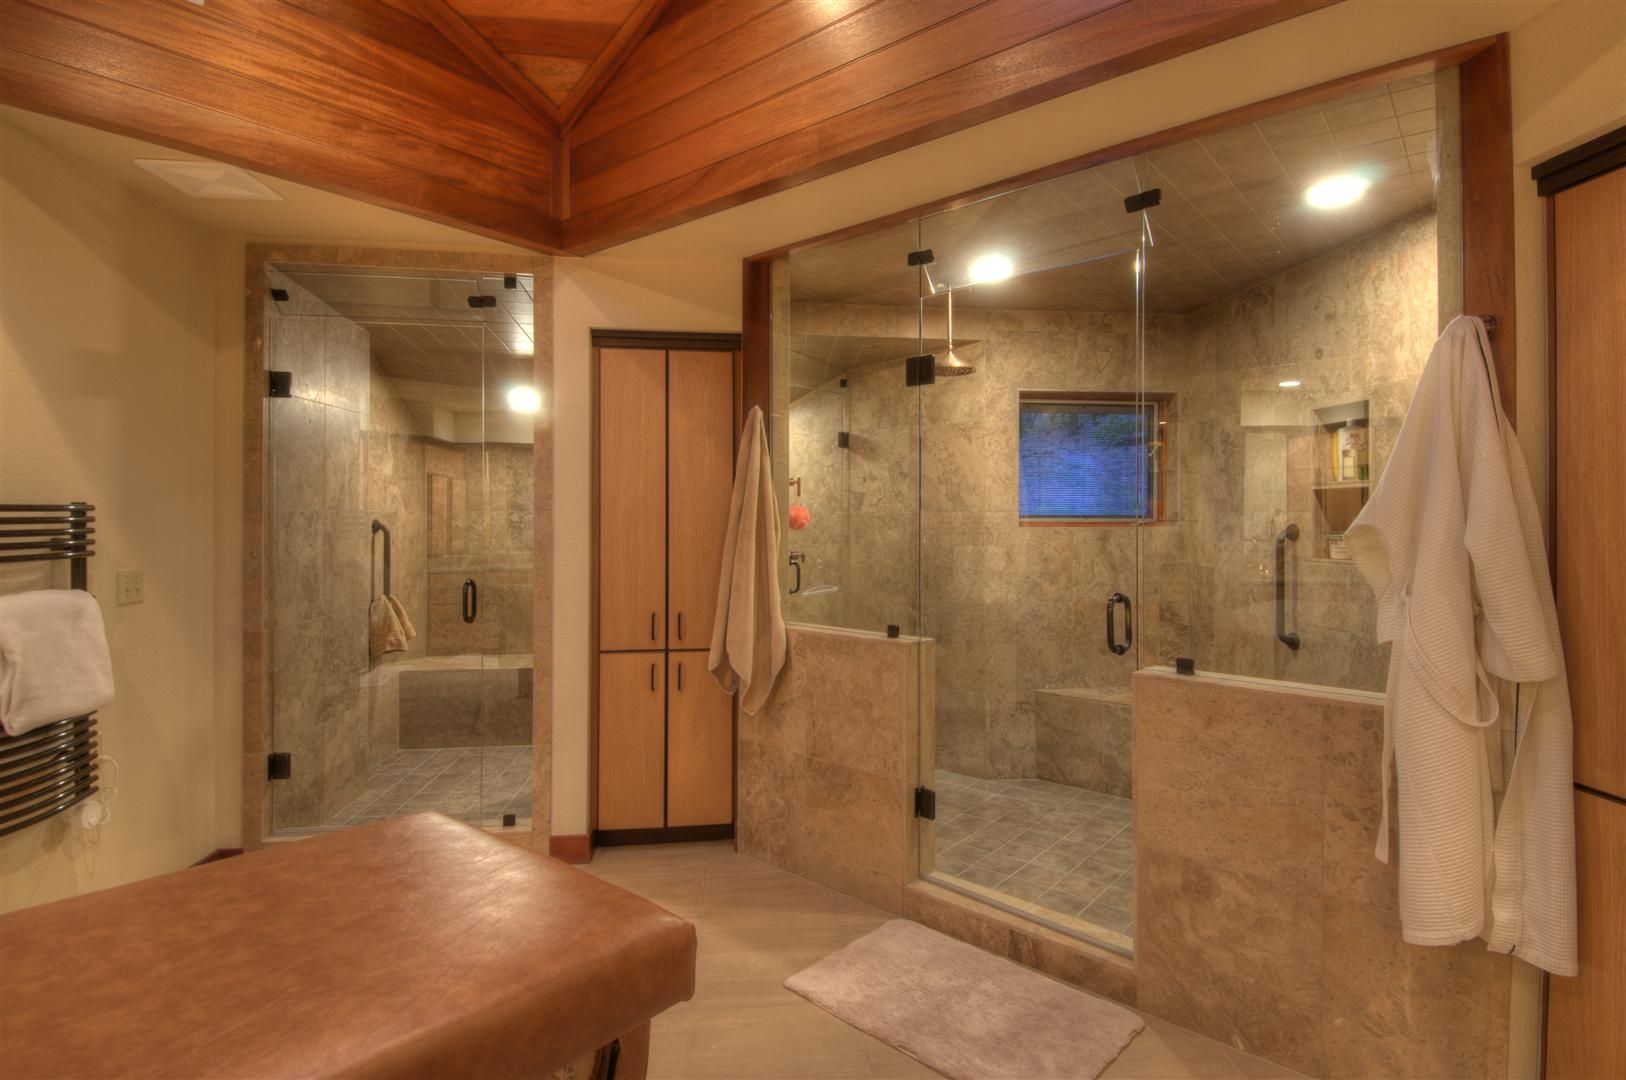 Awesome Shower Ideas For Master Bathroom With Double Glass Walk In Adorable Wall And